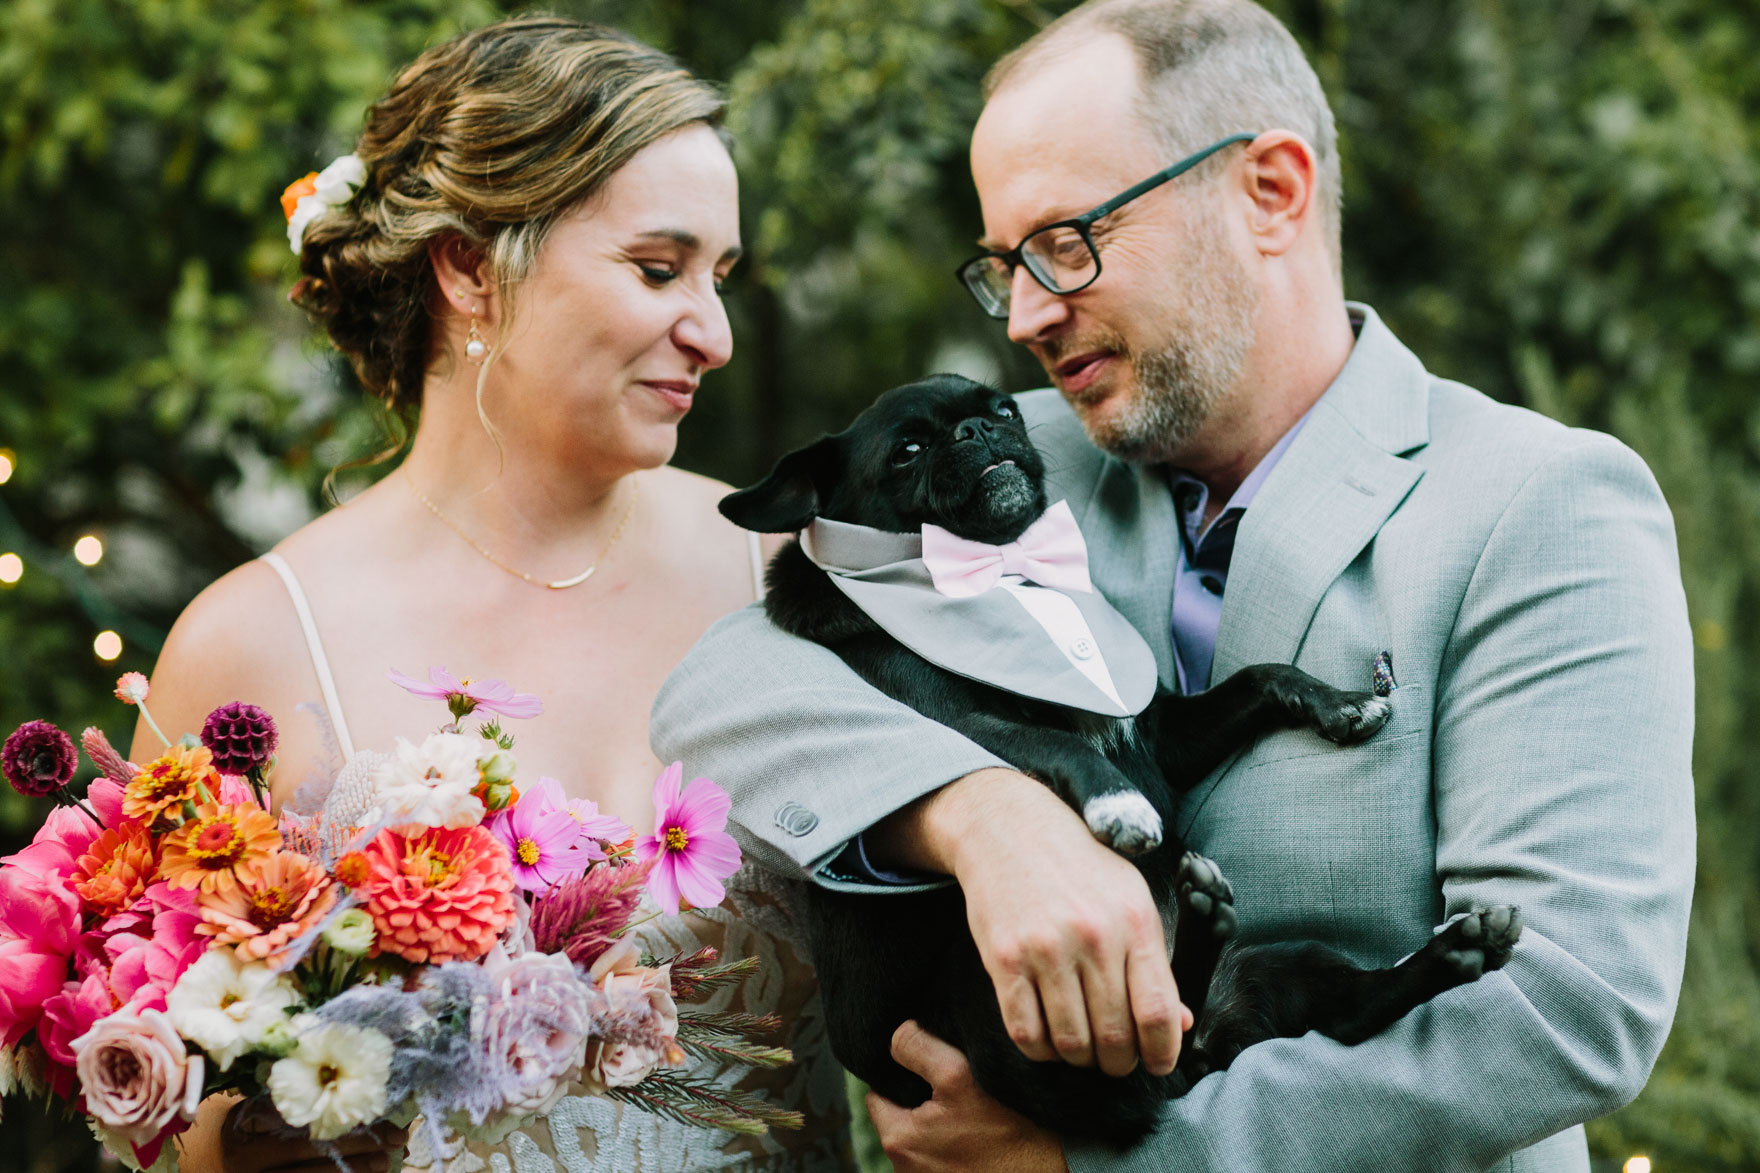 Charming Backyard Microwedding – Photo by Let's Frolic Together